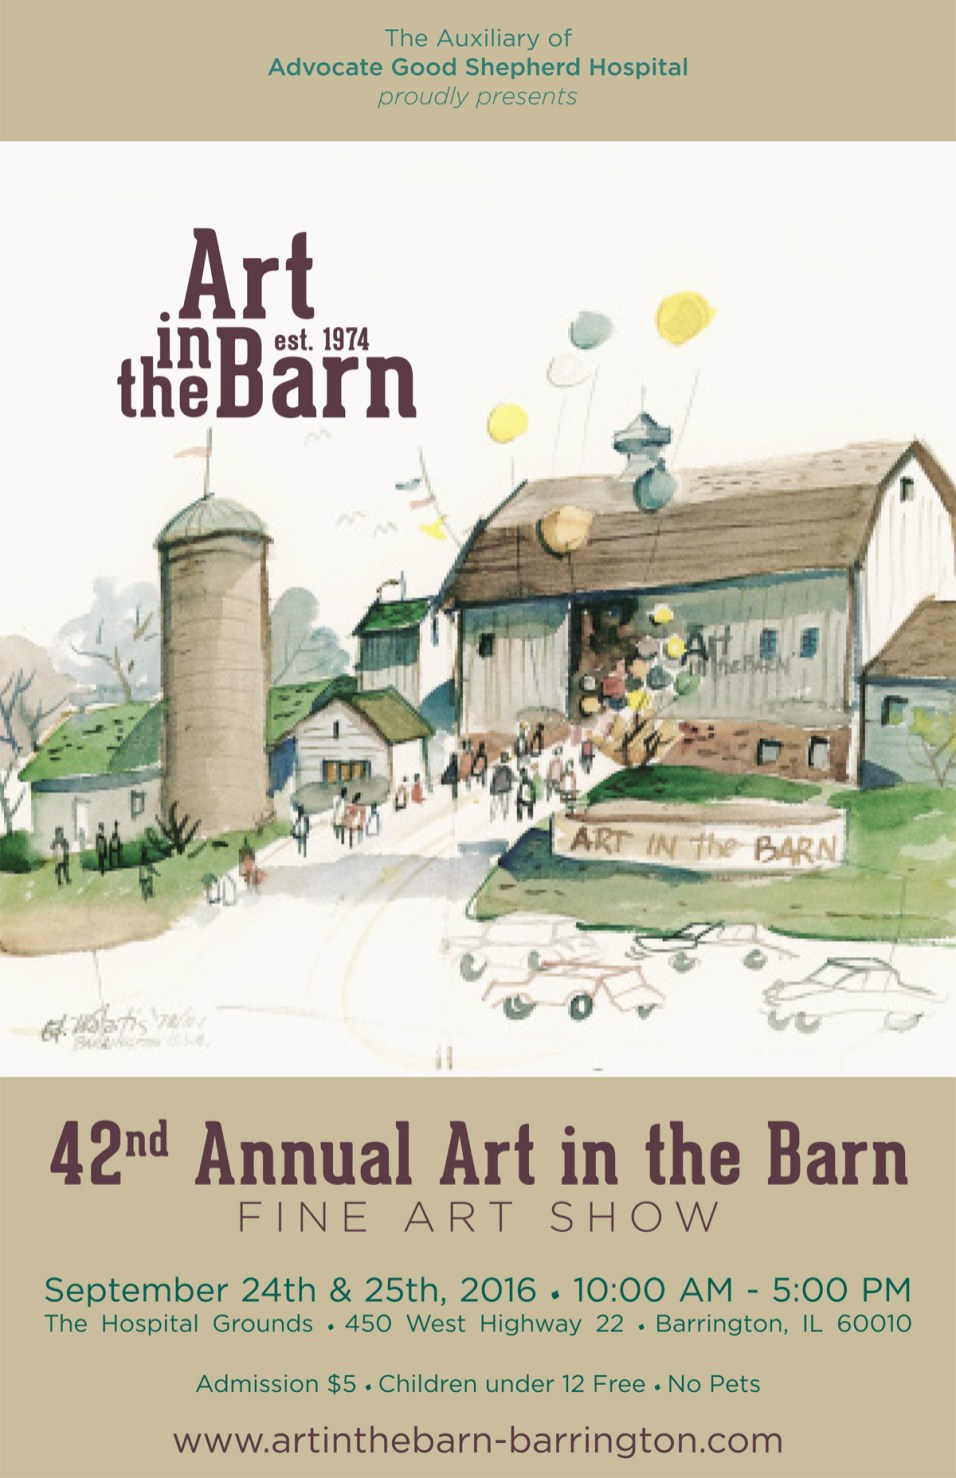 Post 1200 - Art in the barn poster 2016